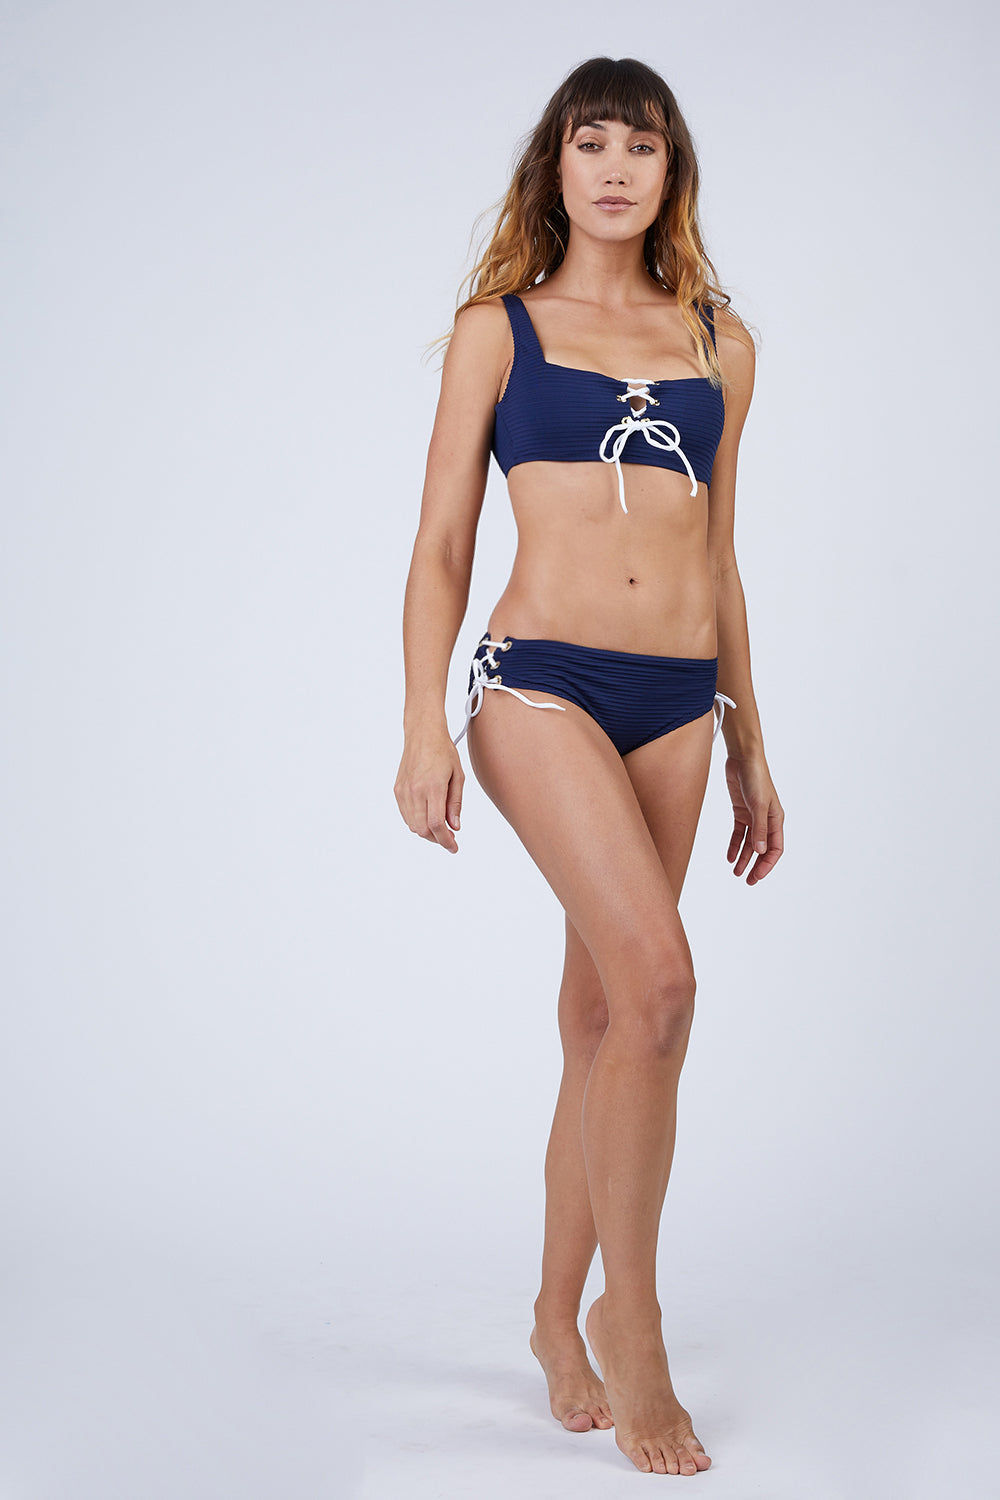 HEIDI KLEIN Ribbed Lace Up Mid Rise Bikini Bottom - Navy Blue Bikini Bottom | Navy Blue| Heidi Klein Ribbed Lace Up Mid Rise Bikini Bottom - Navy Blue. Features:  This style is cut to be High Rise and Mid Coverage. The waist and legs are elasticated for a secure, comfortable fit. Fully lined in soft lining for ultimate comfort. This high waisted style is cut with split side seams, fastened with decorative lacing. Front View